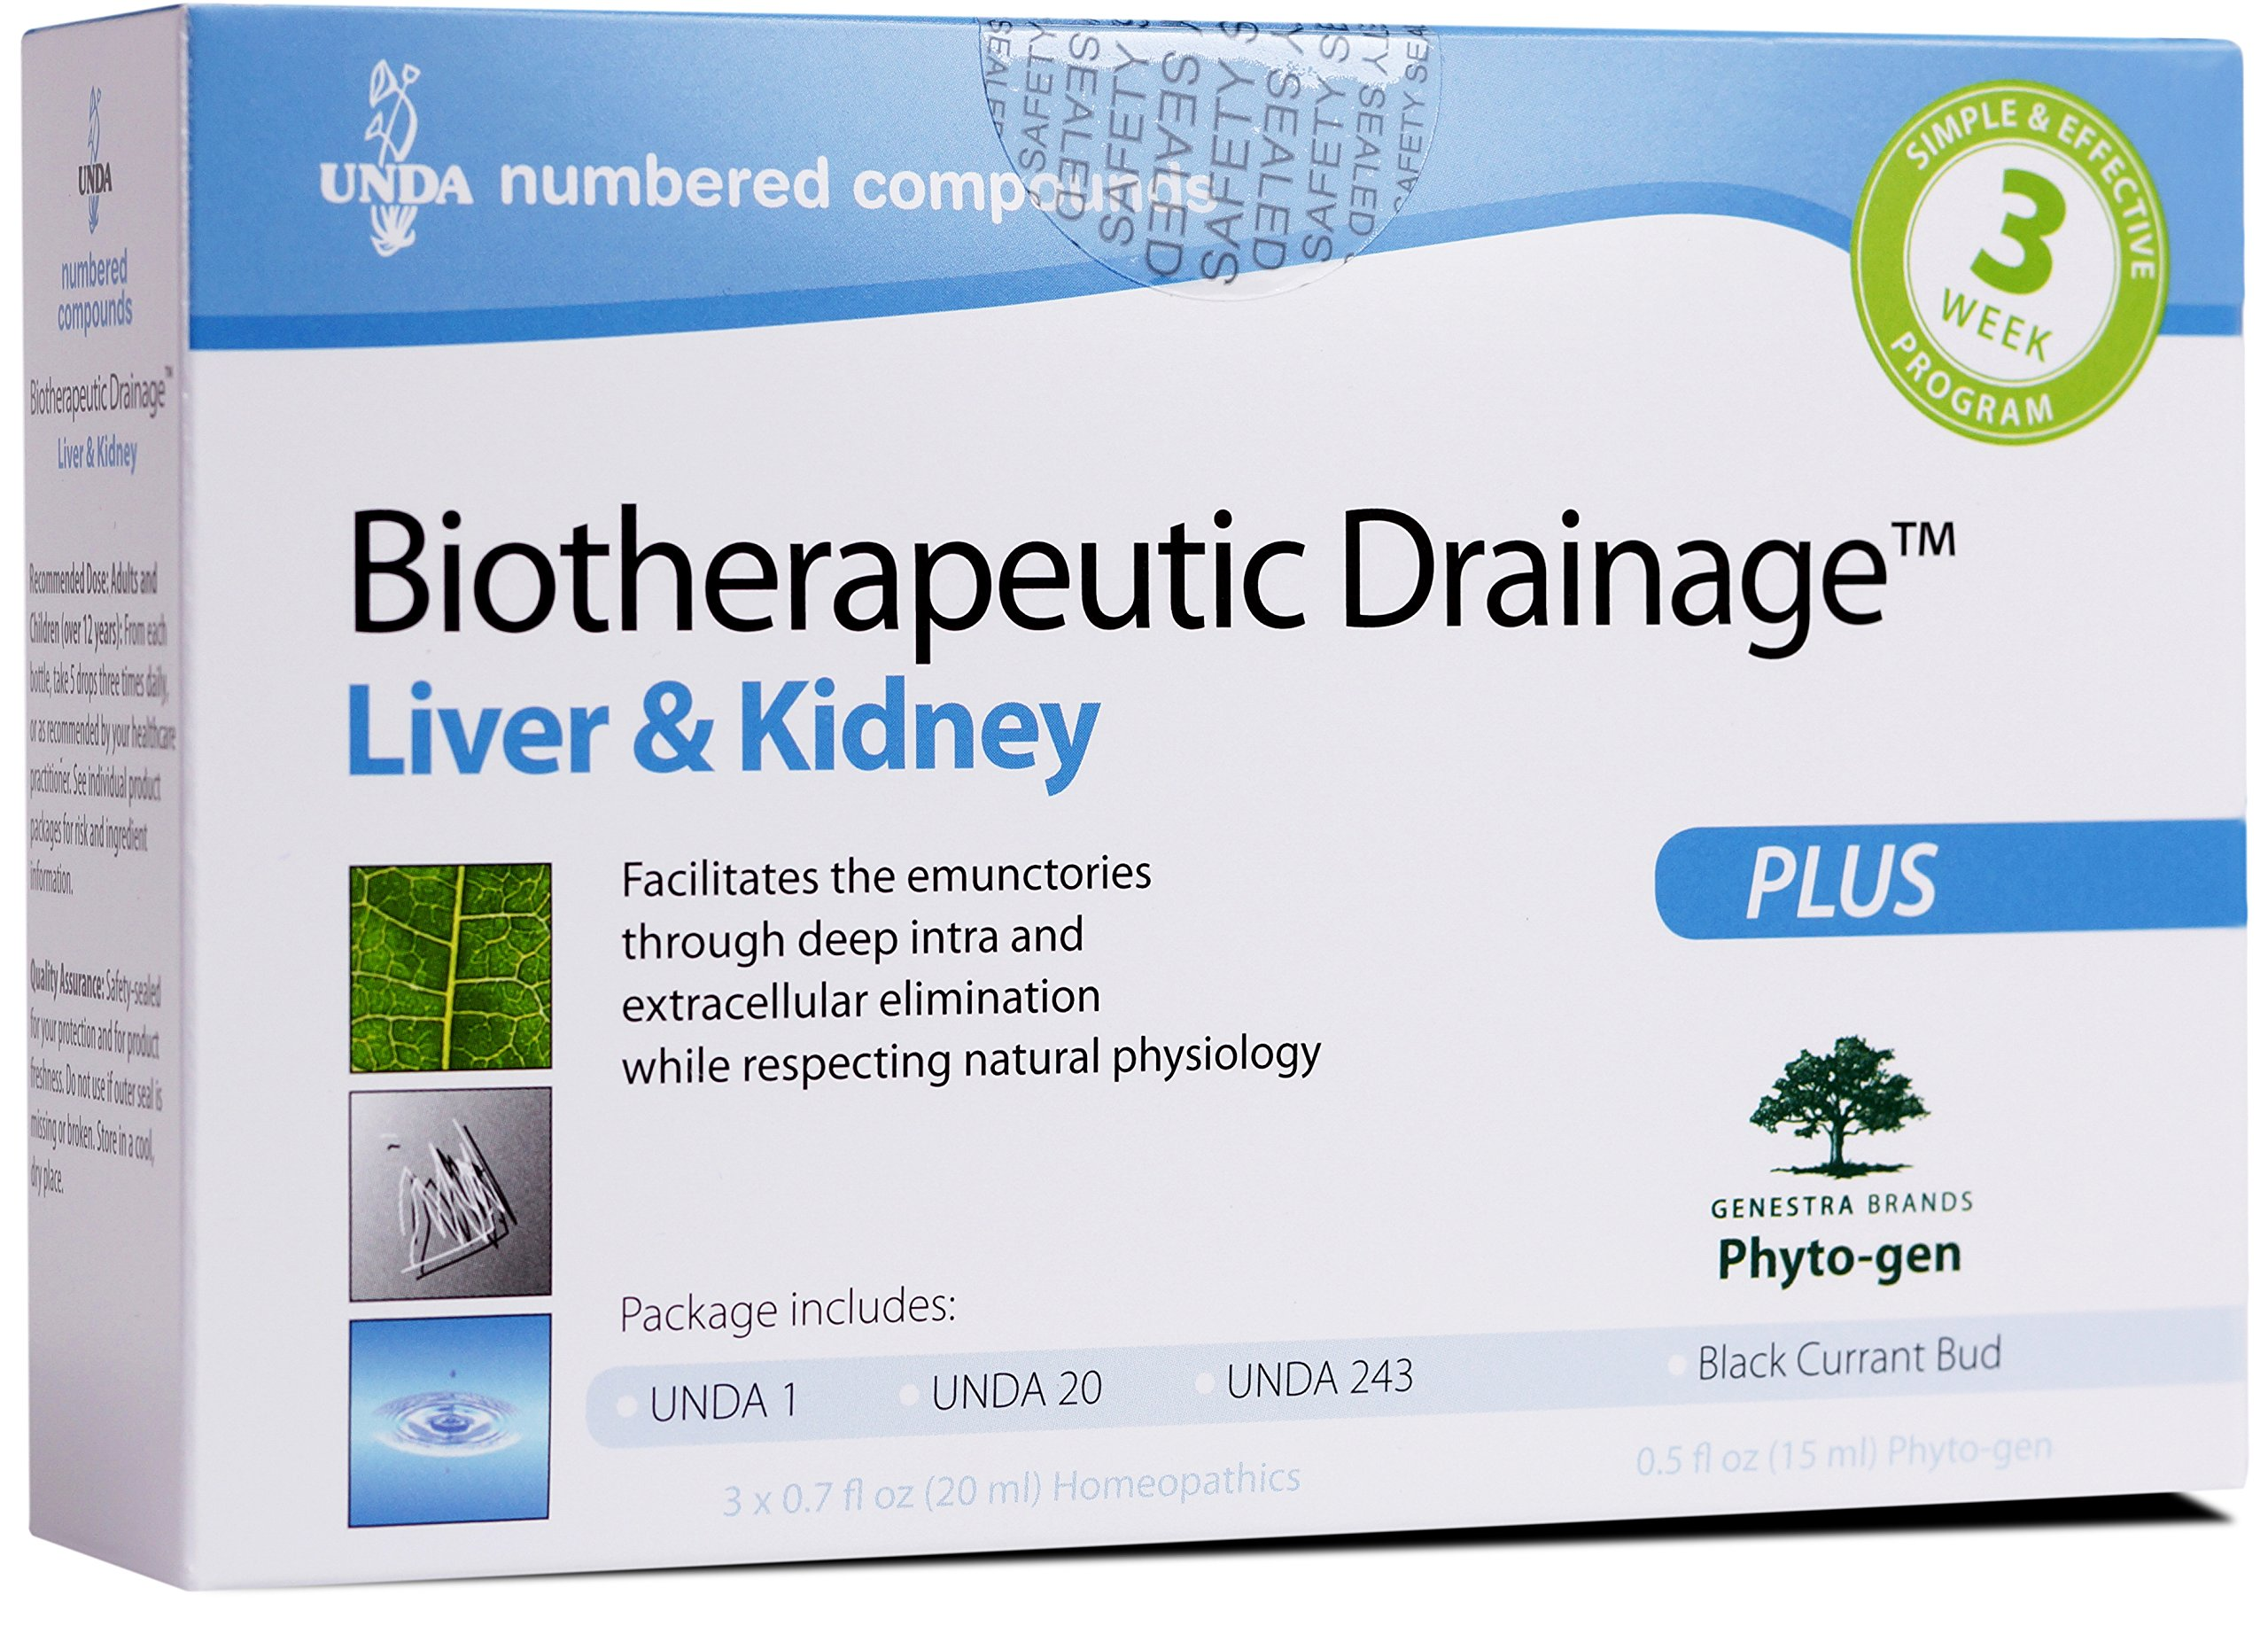 UNDA - Biotherapeutic Drainage - UNDA 1, UNDA 20, UNDA 243 & Black Currant Bud to Support Liver & Kidney*^ - 1 Package